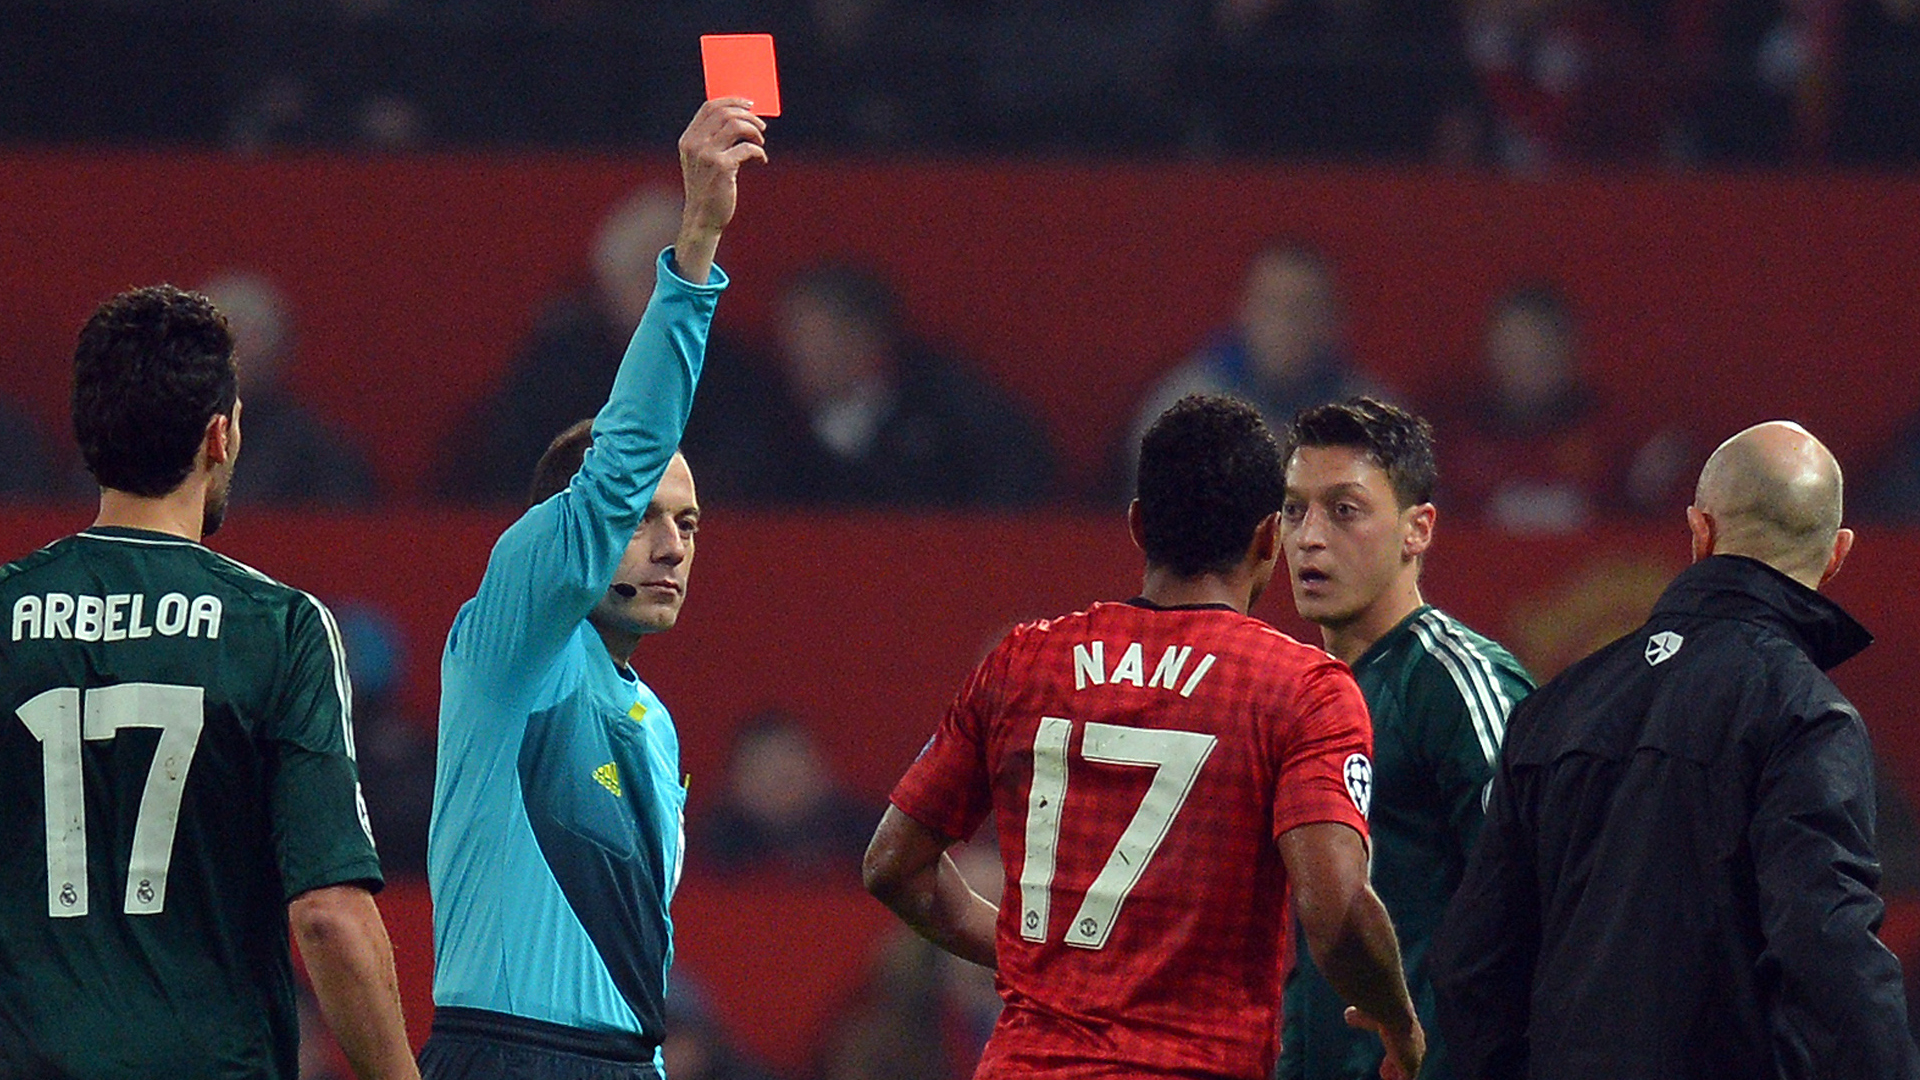 Referee Cuneyt Cakir shows Nani the red card s Nani the red card to send him off during he UEFA Champions League Manchester United and Real Madrid at Old Trafford 2013